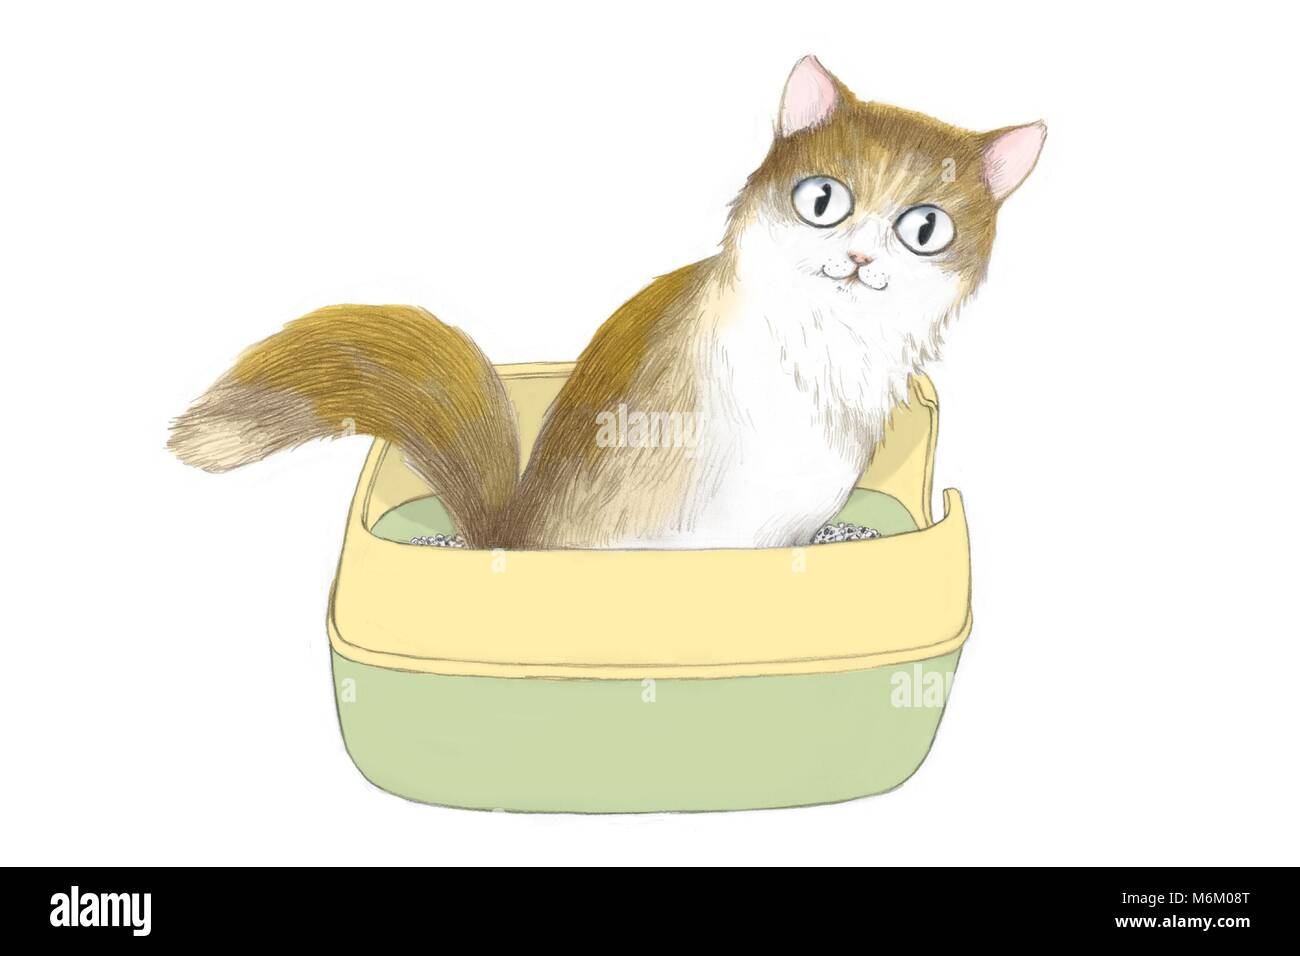 Illustration - lovely and cute cat's daily life 003 - Stock Image